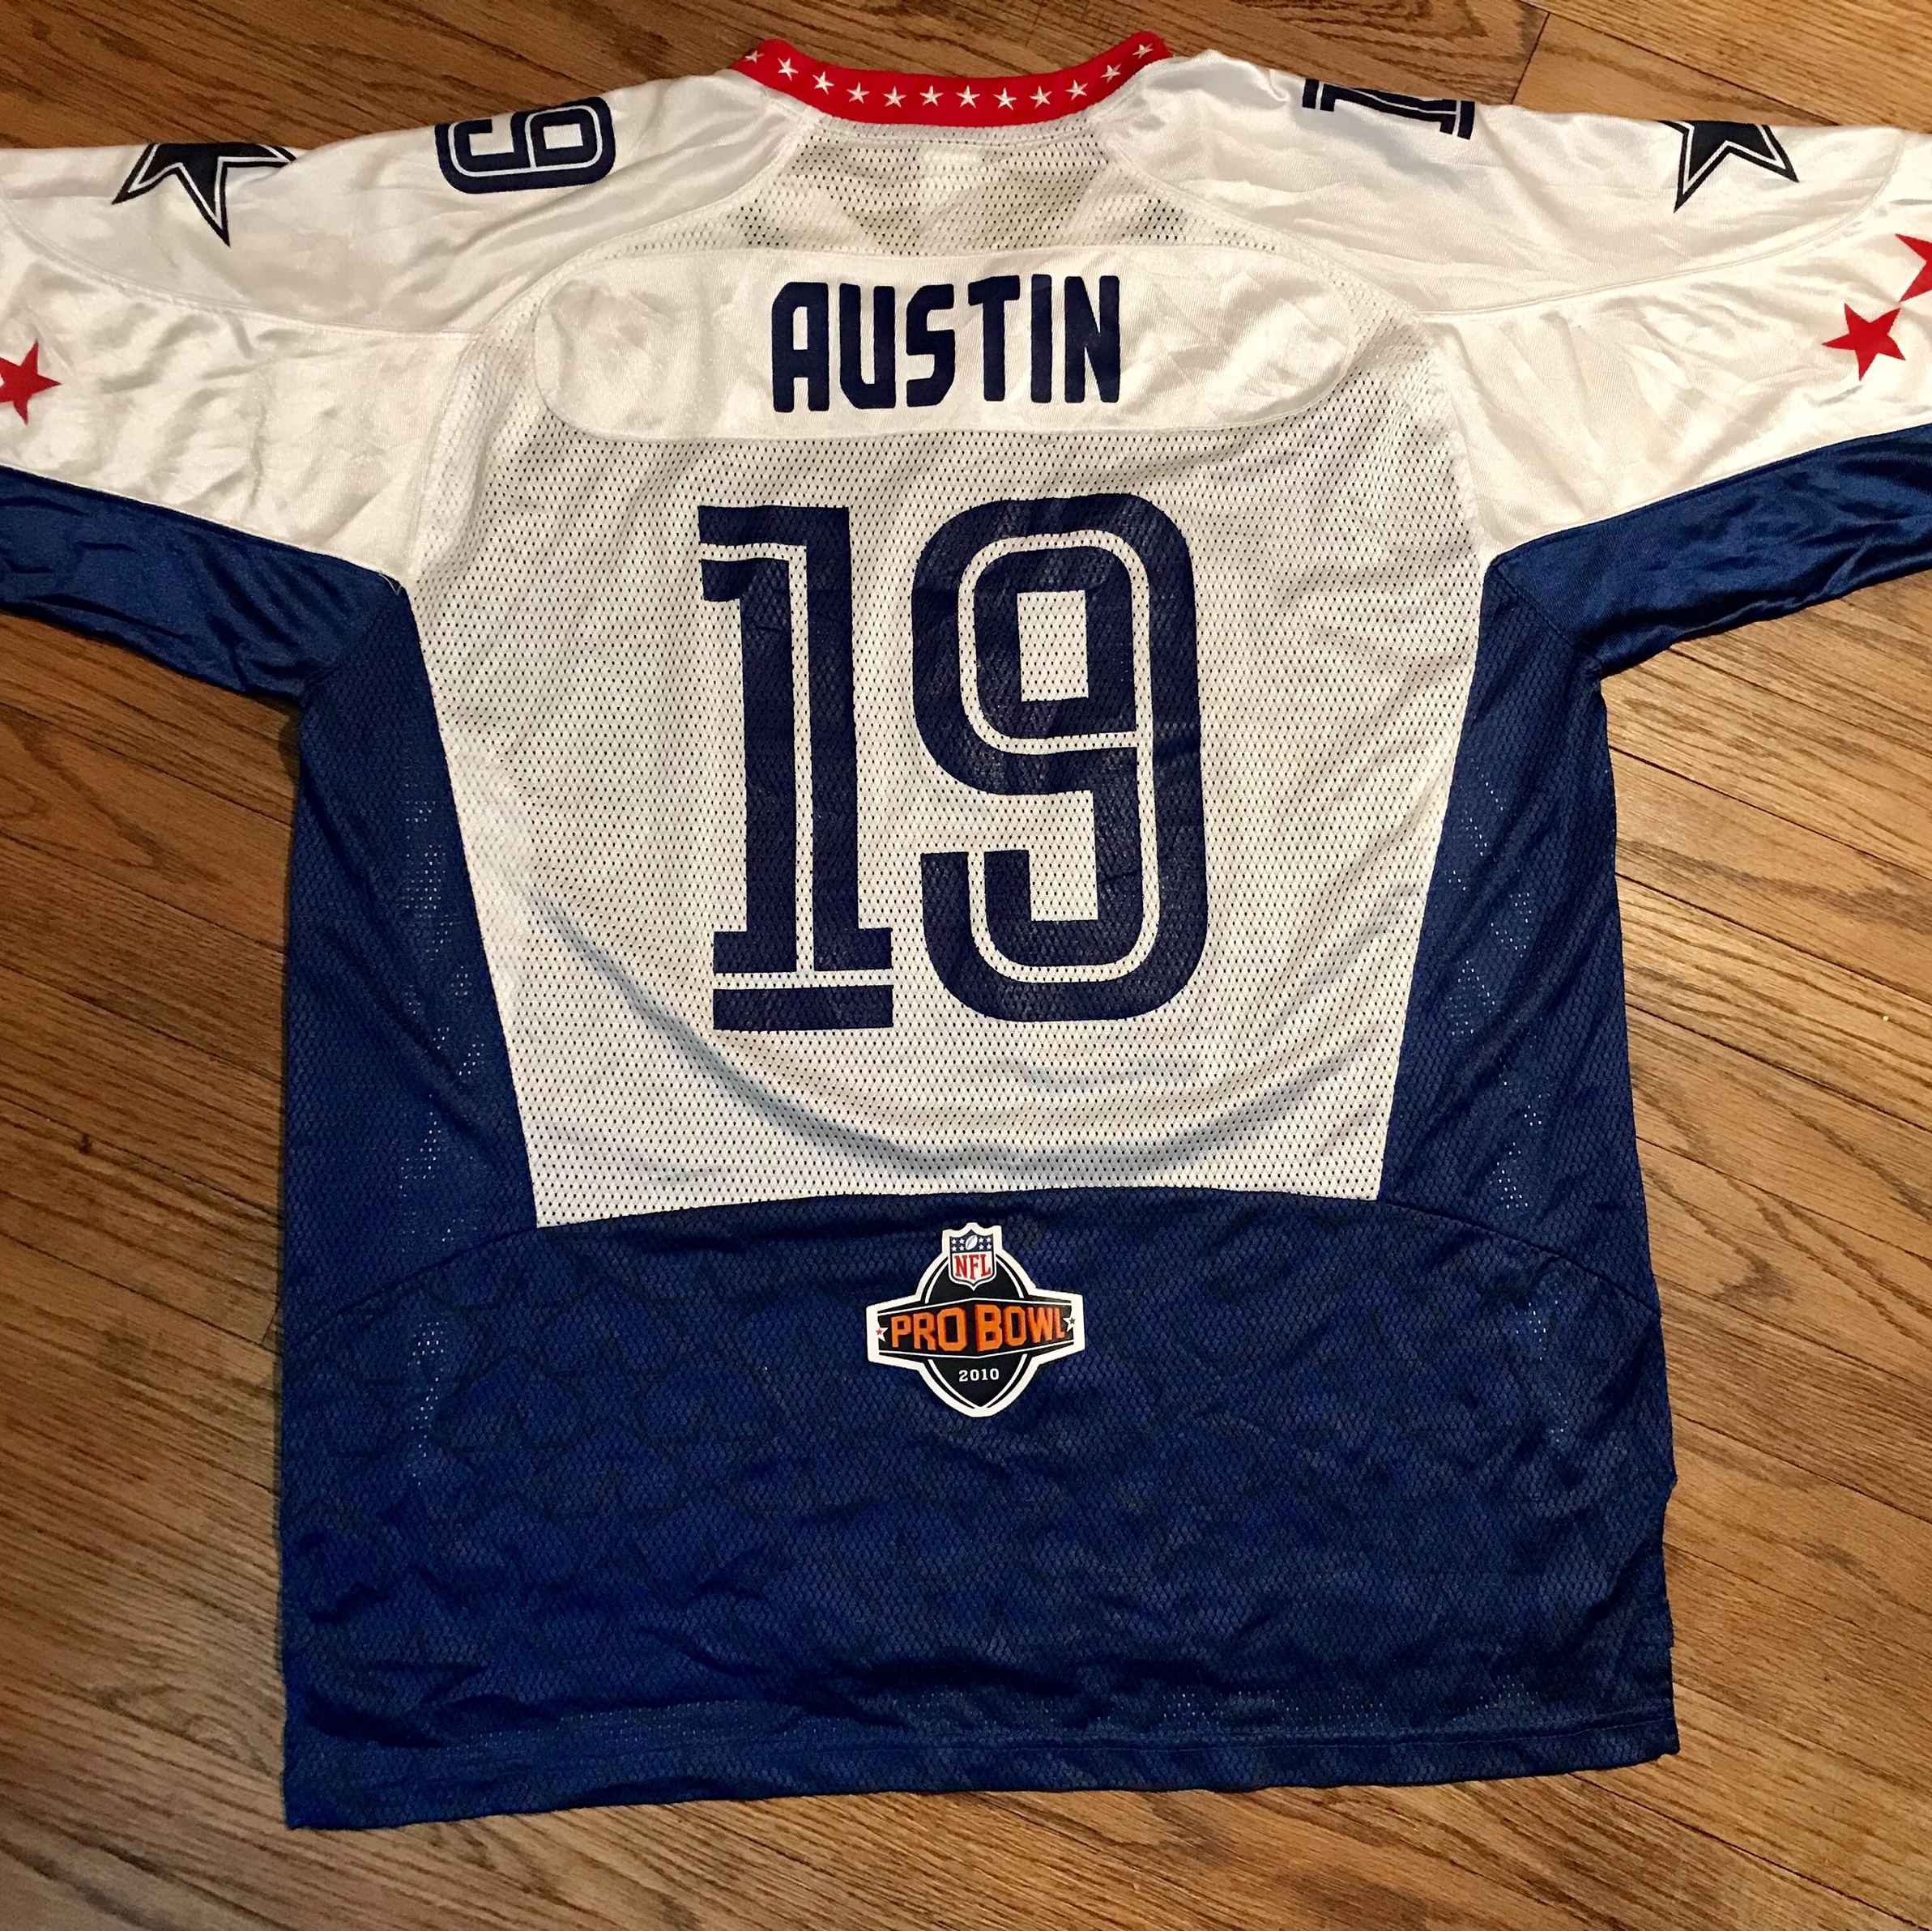 buy popular c1078 45a54 Miles Austin Pro Bowl Jersey...2010 Dallas Cowboys - Depop